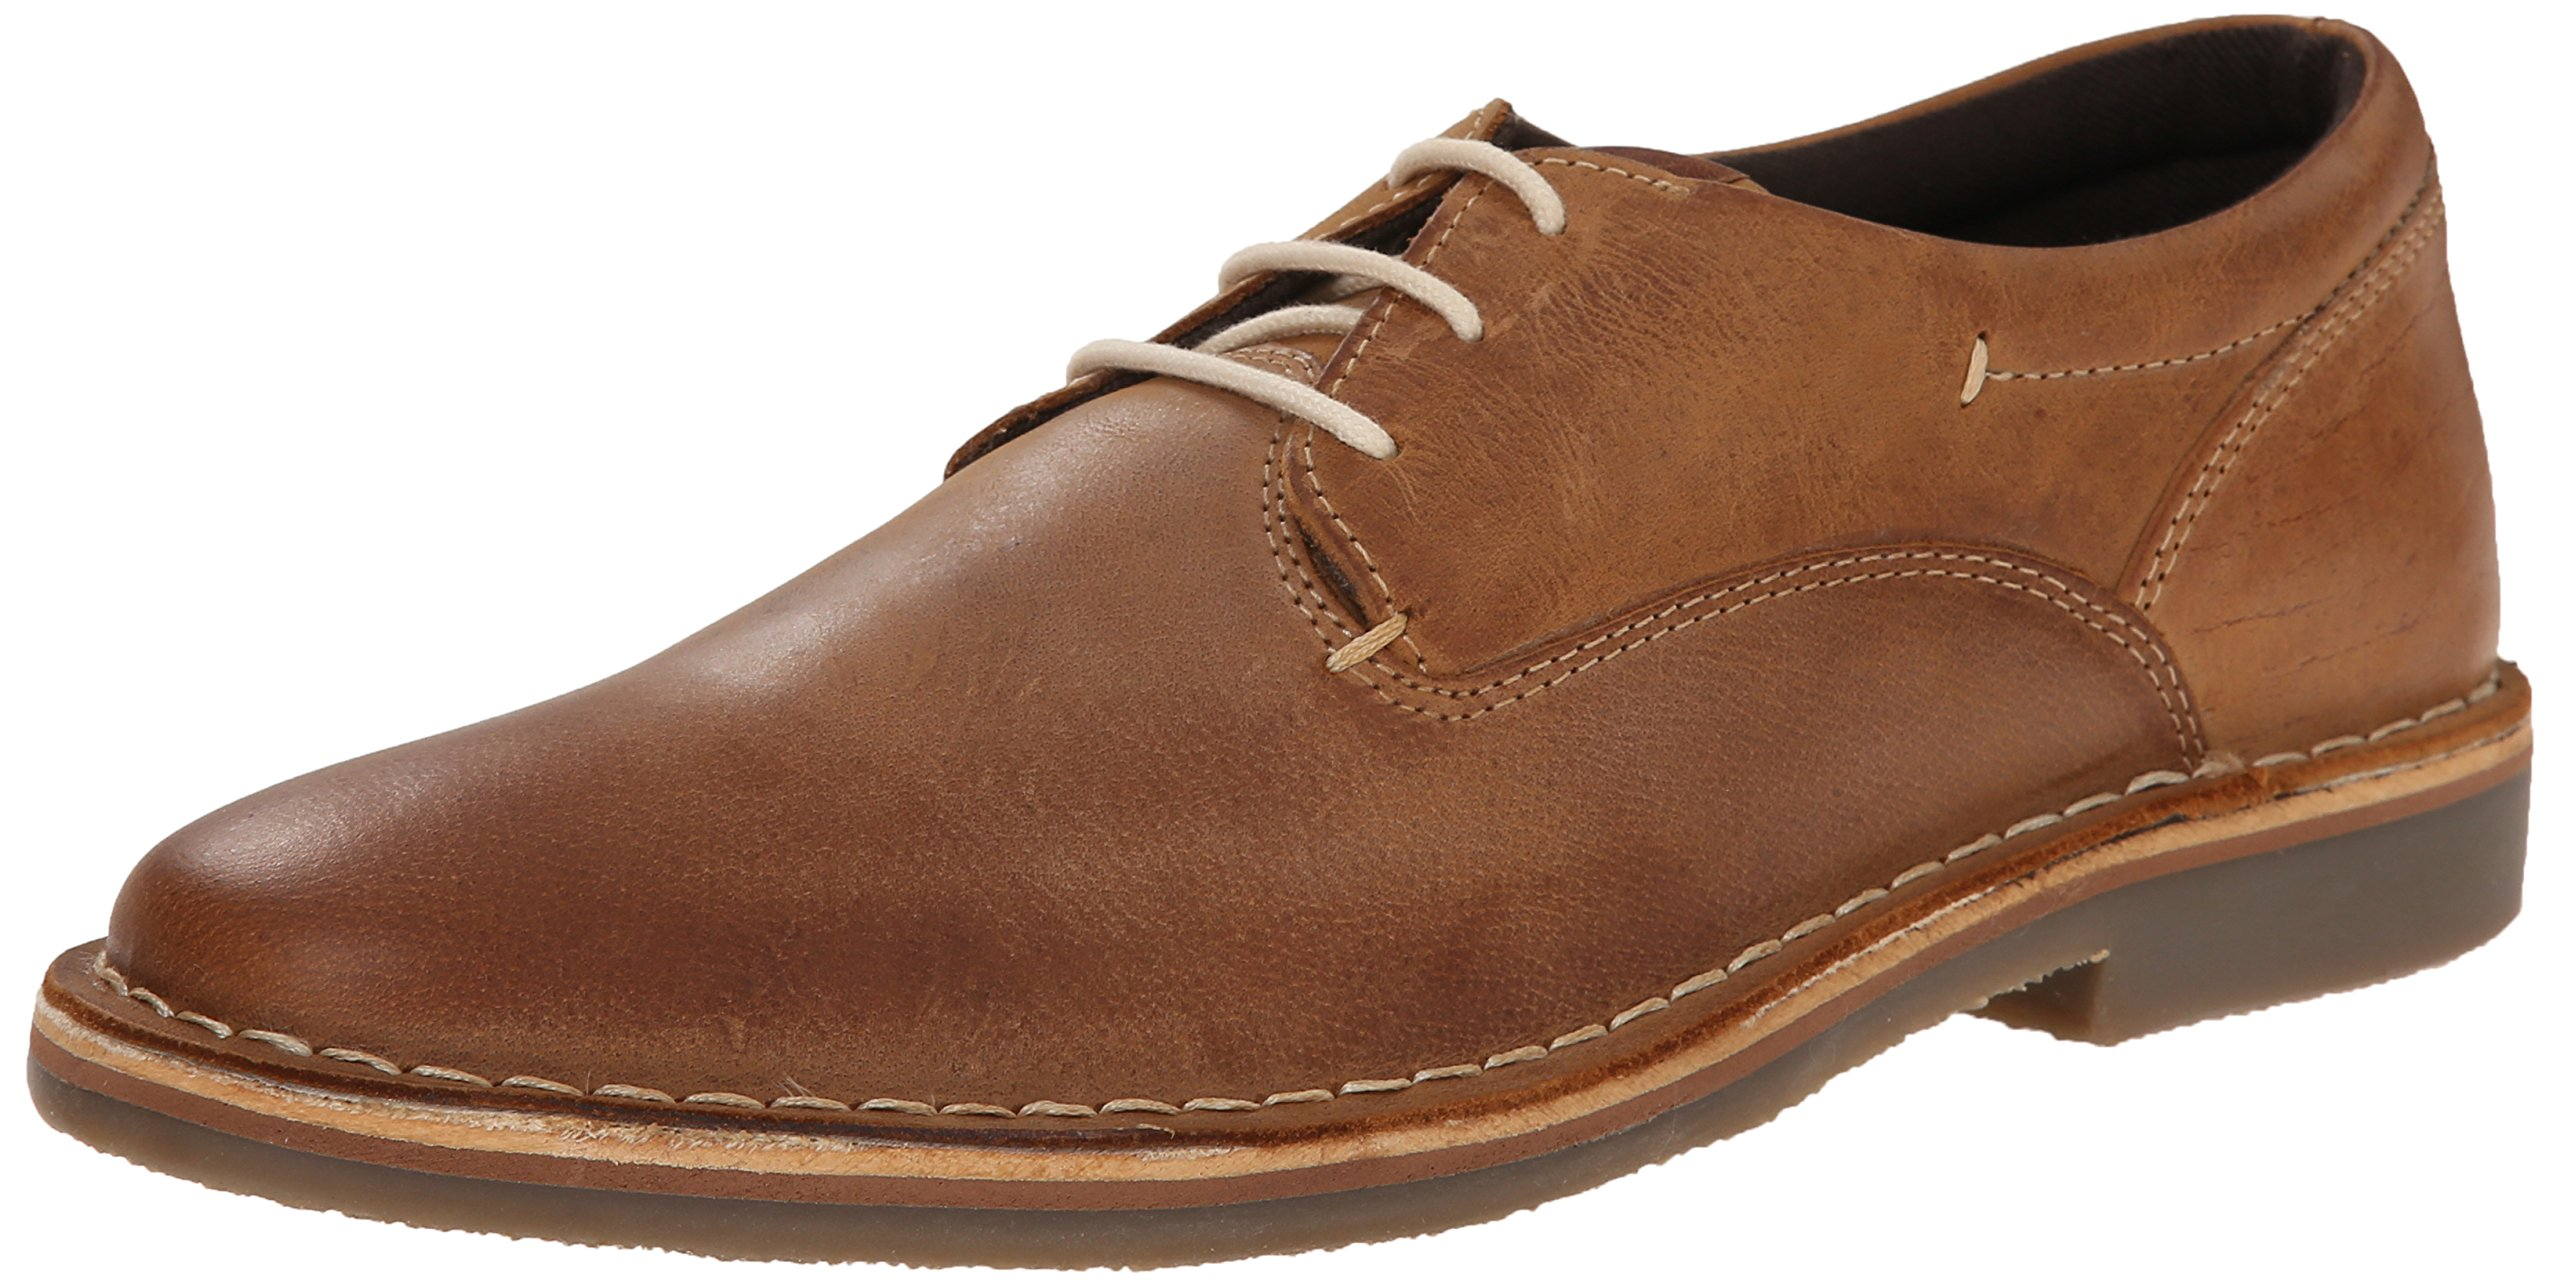 Steve Madden Men's Harpoon Oxford, Tan, 9.5 M US